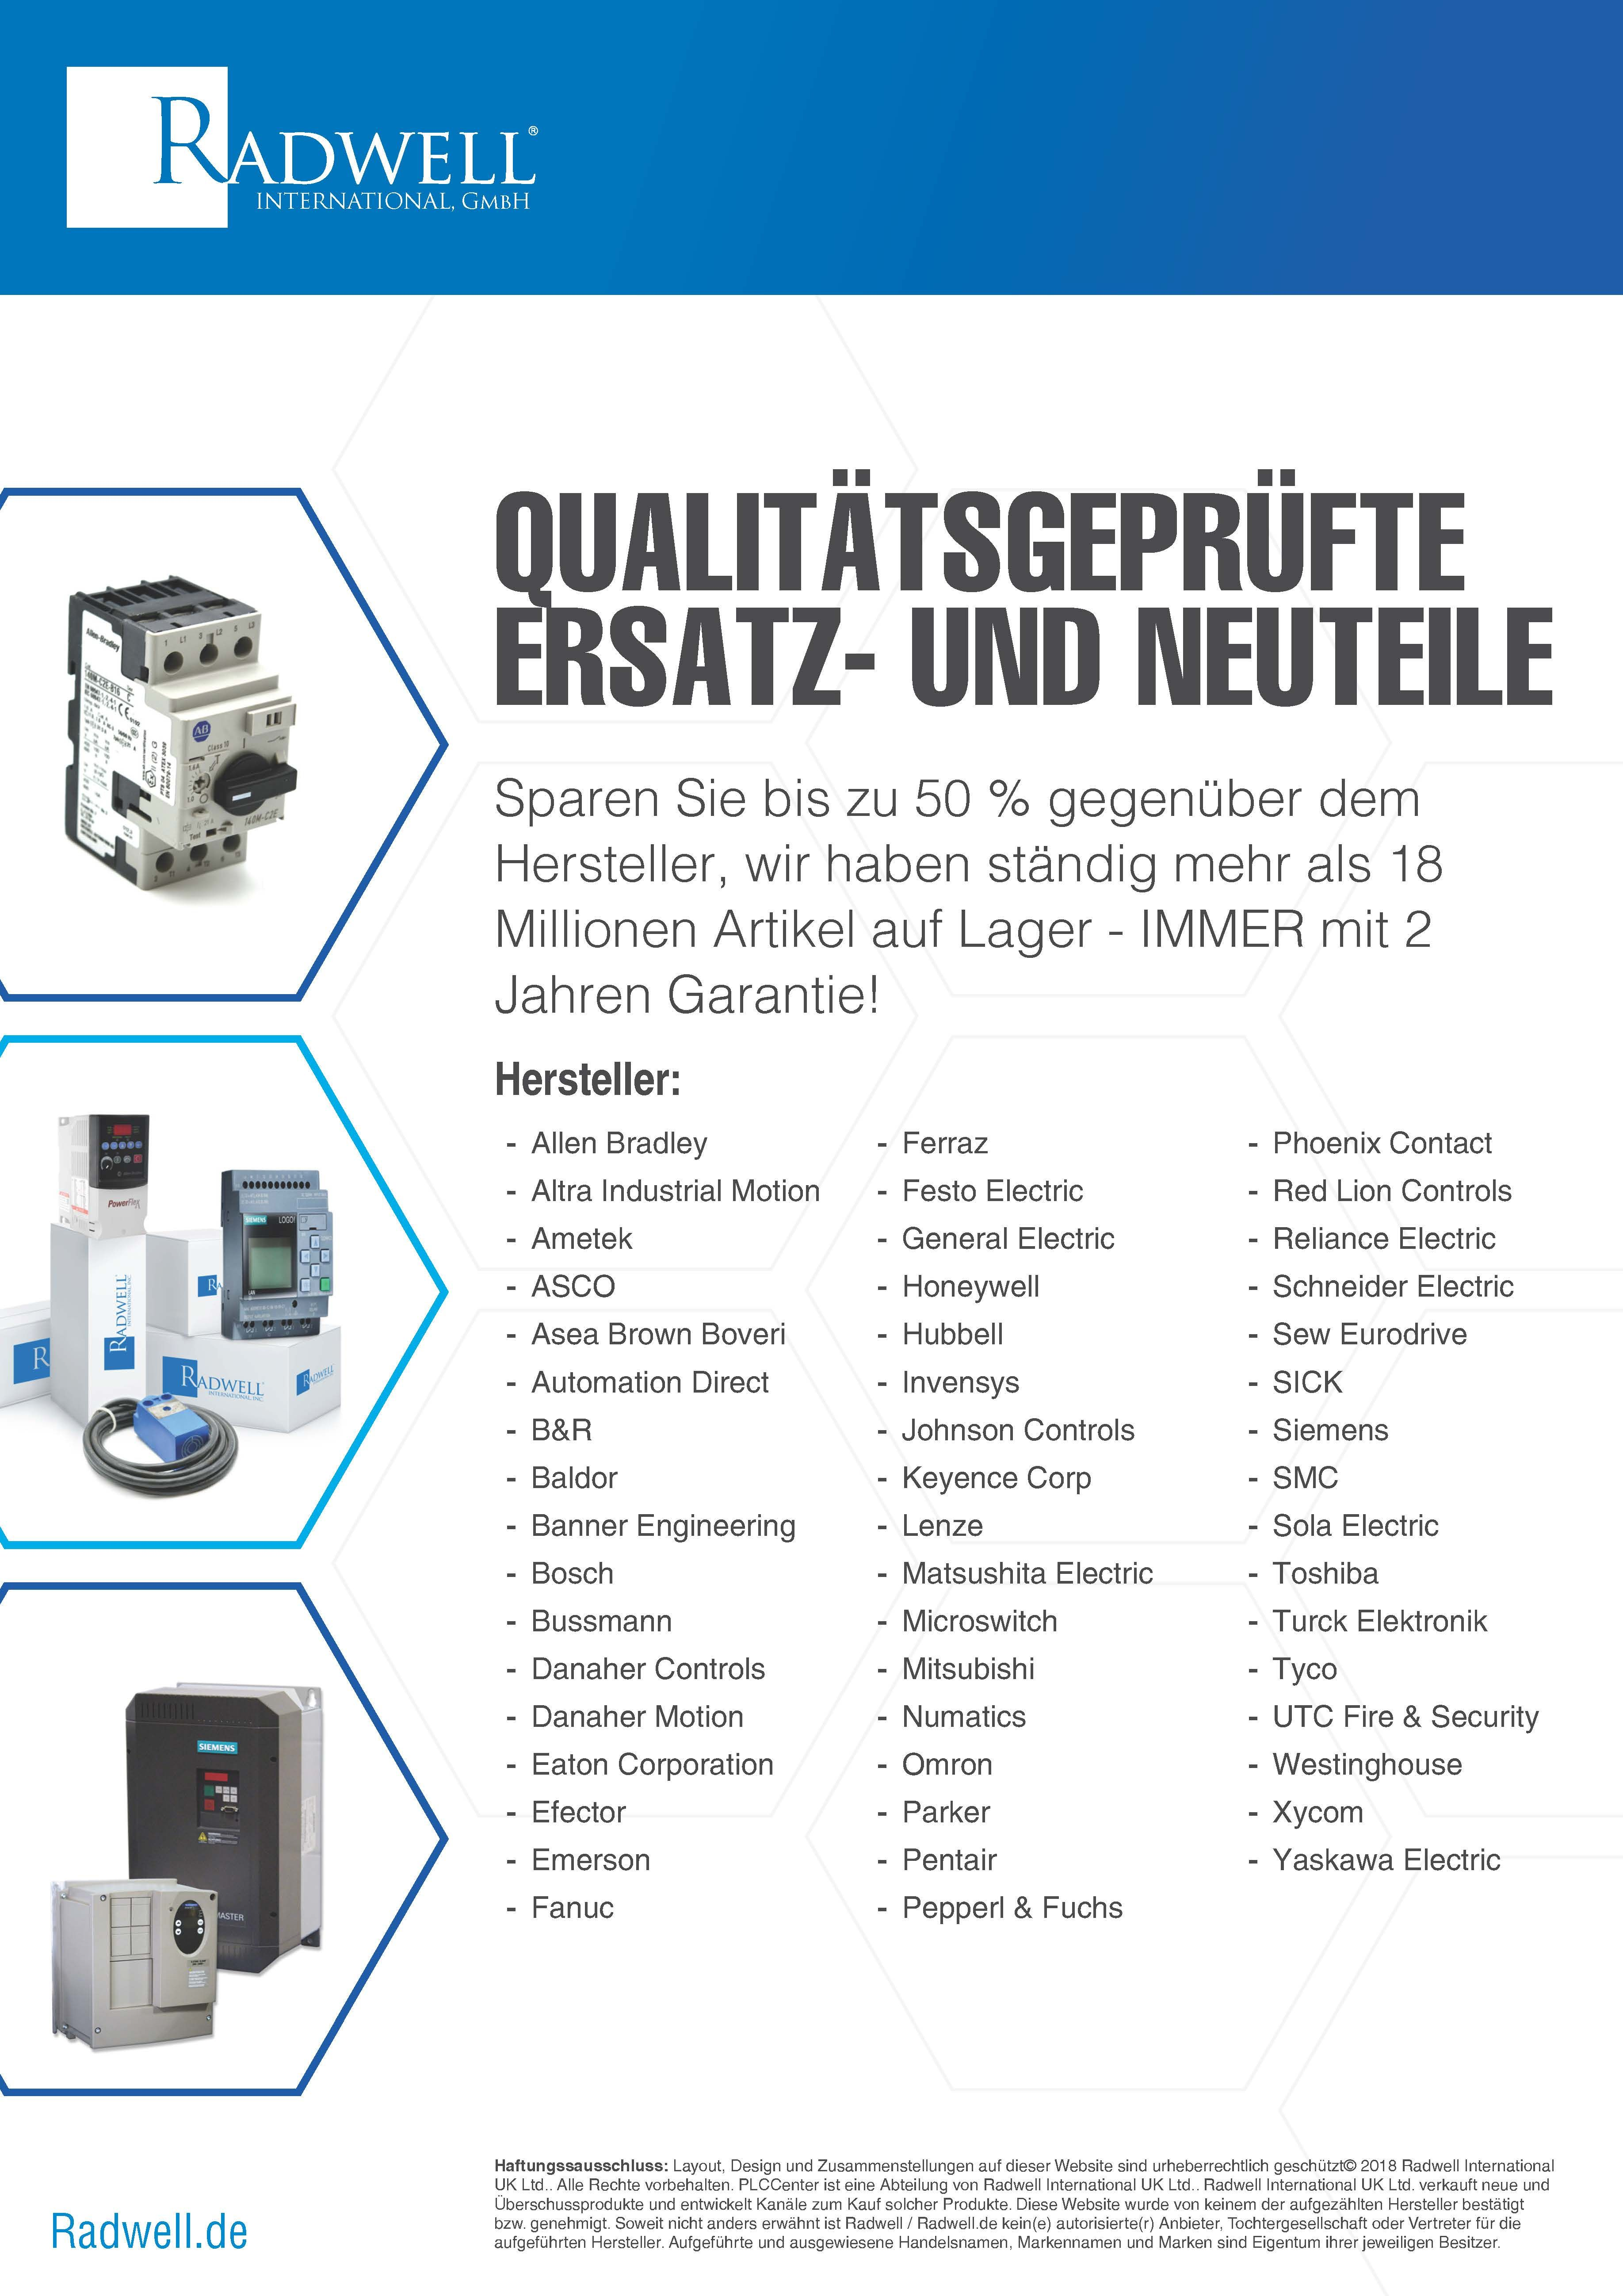 Pin by Radwell Int'l on Radwell White Papers_German | White paper